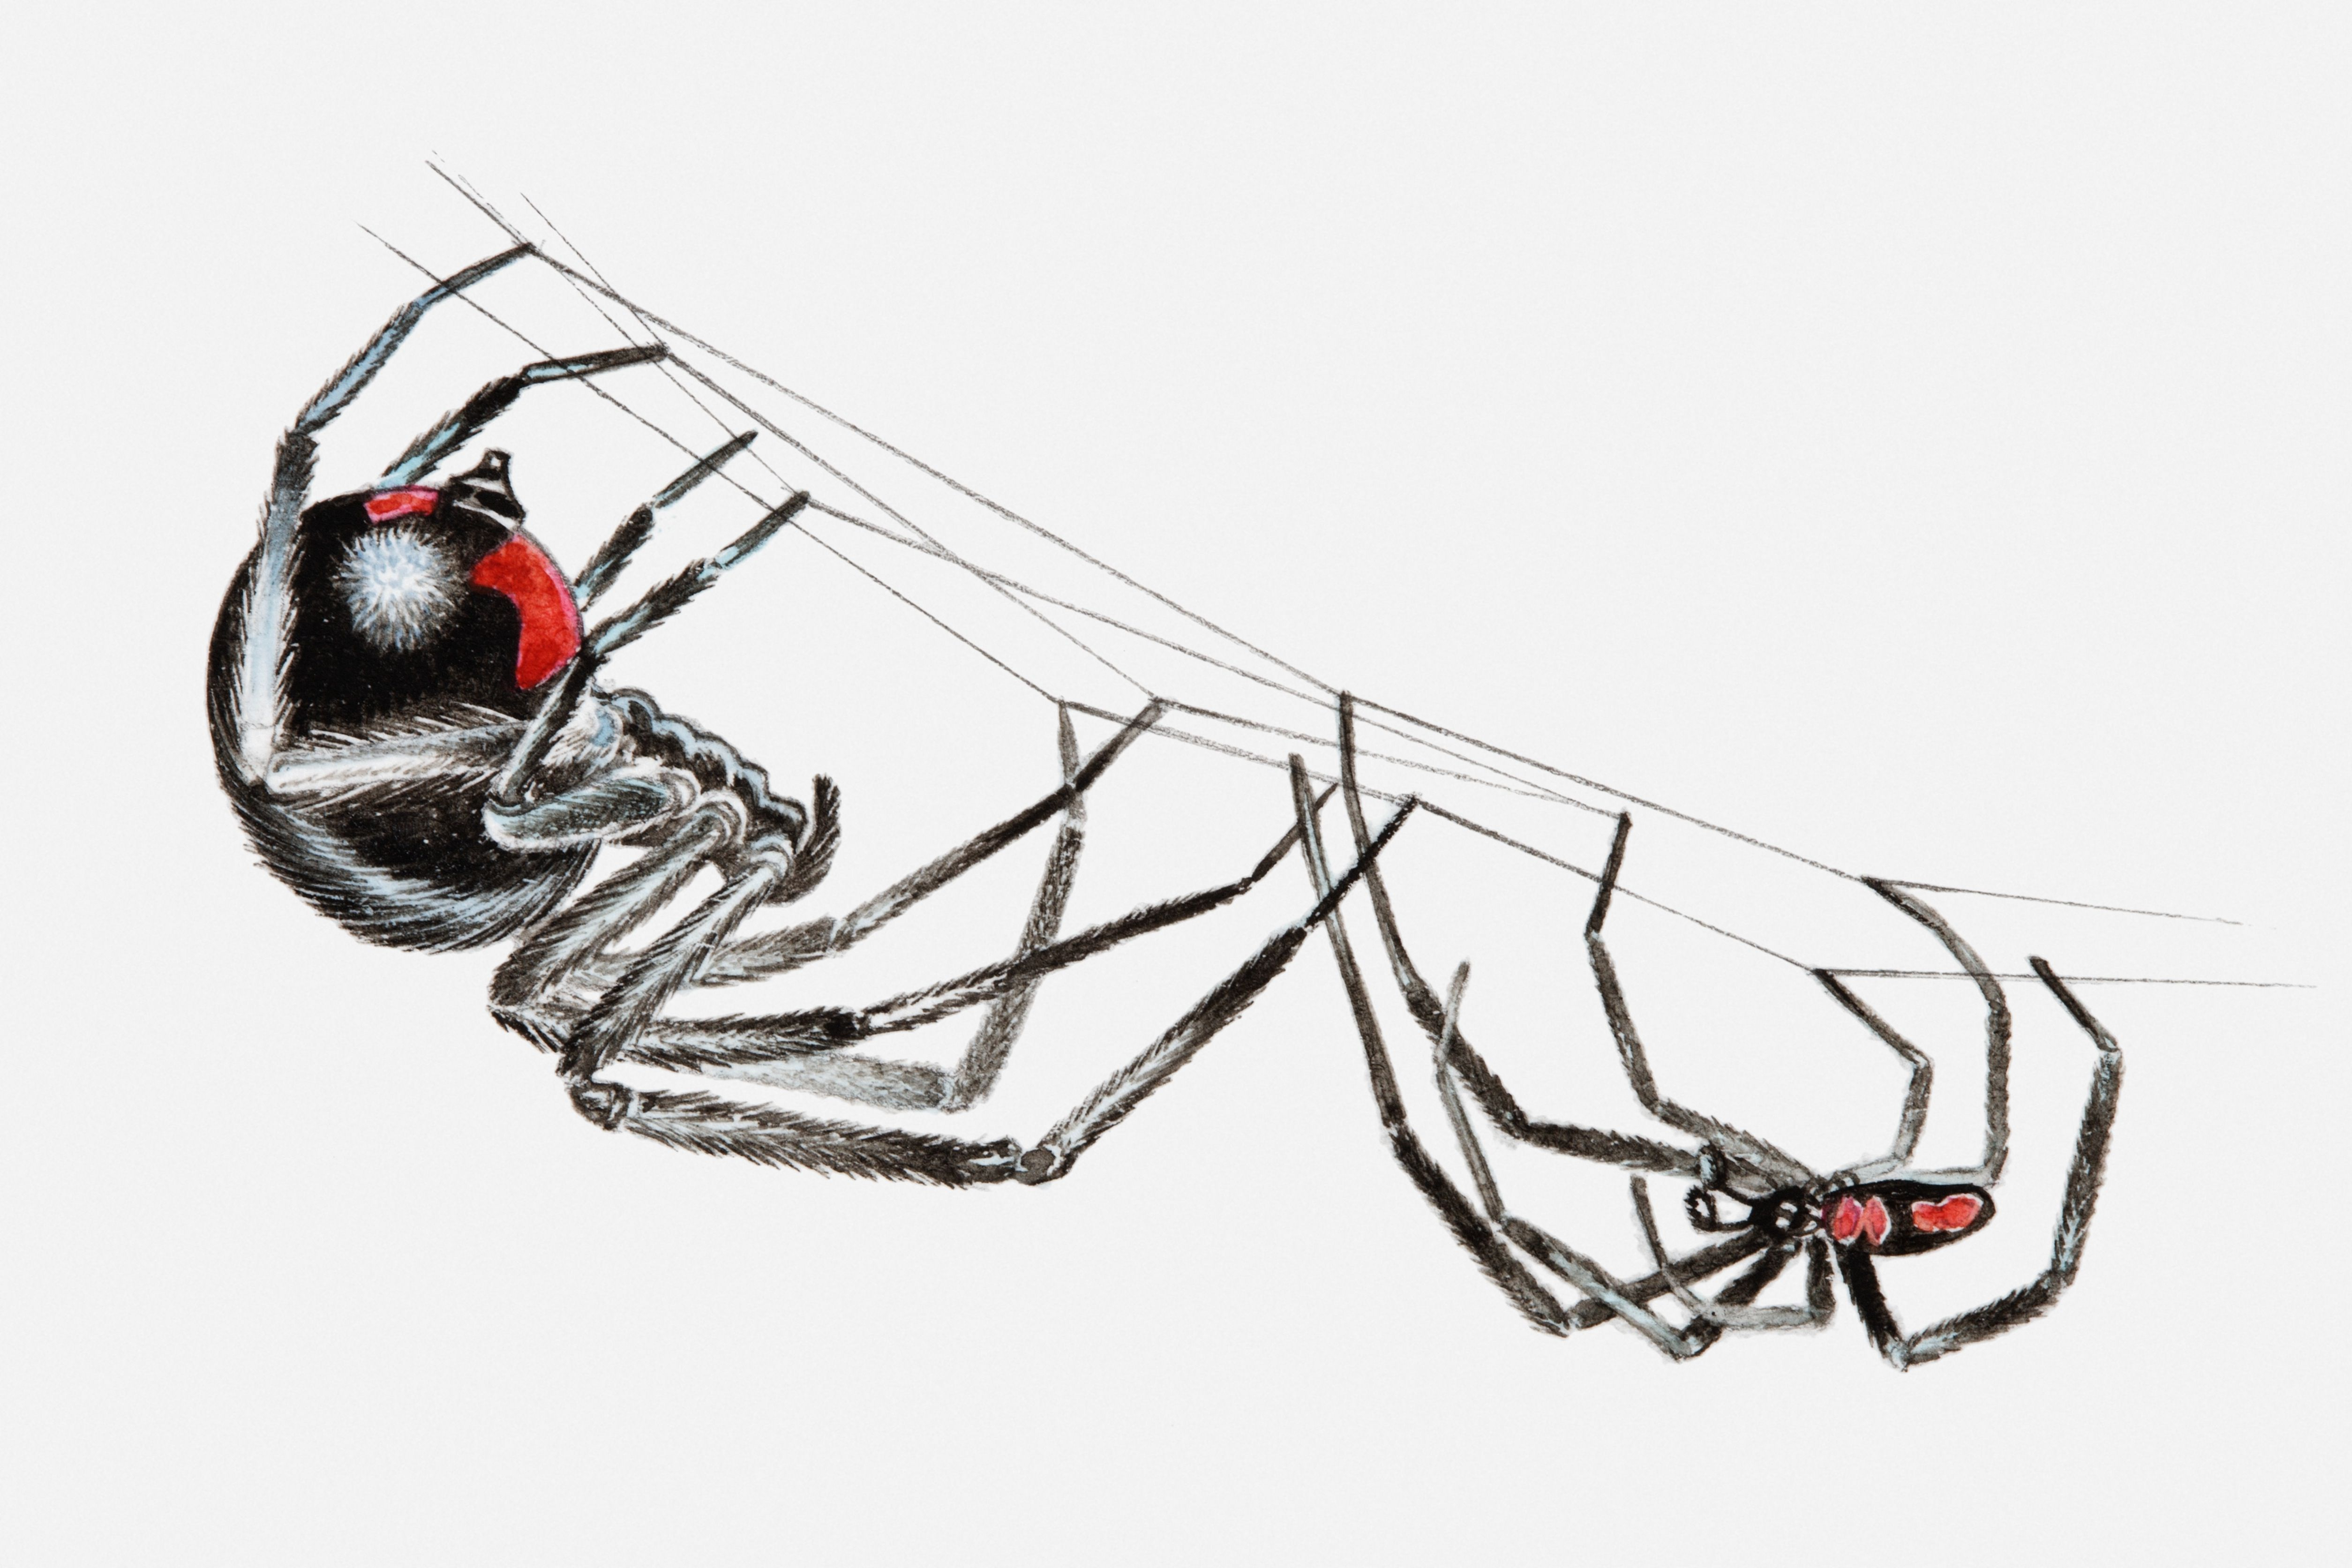 Illustration of pair of black widow spiders (Latrodectus sp.), larger female and smaller male, hanging upside down from a spider web in courtship ritual.